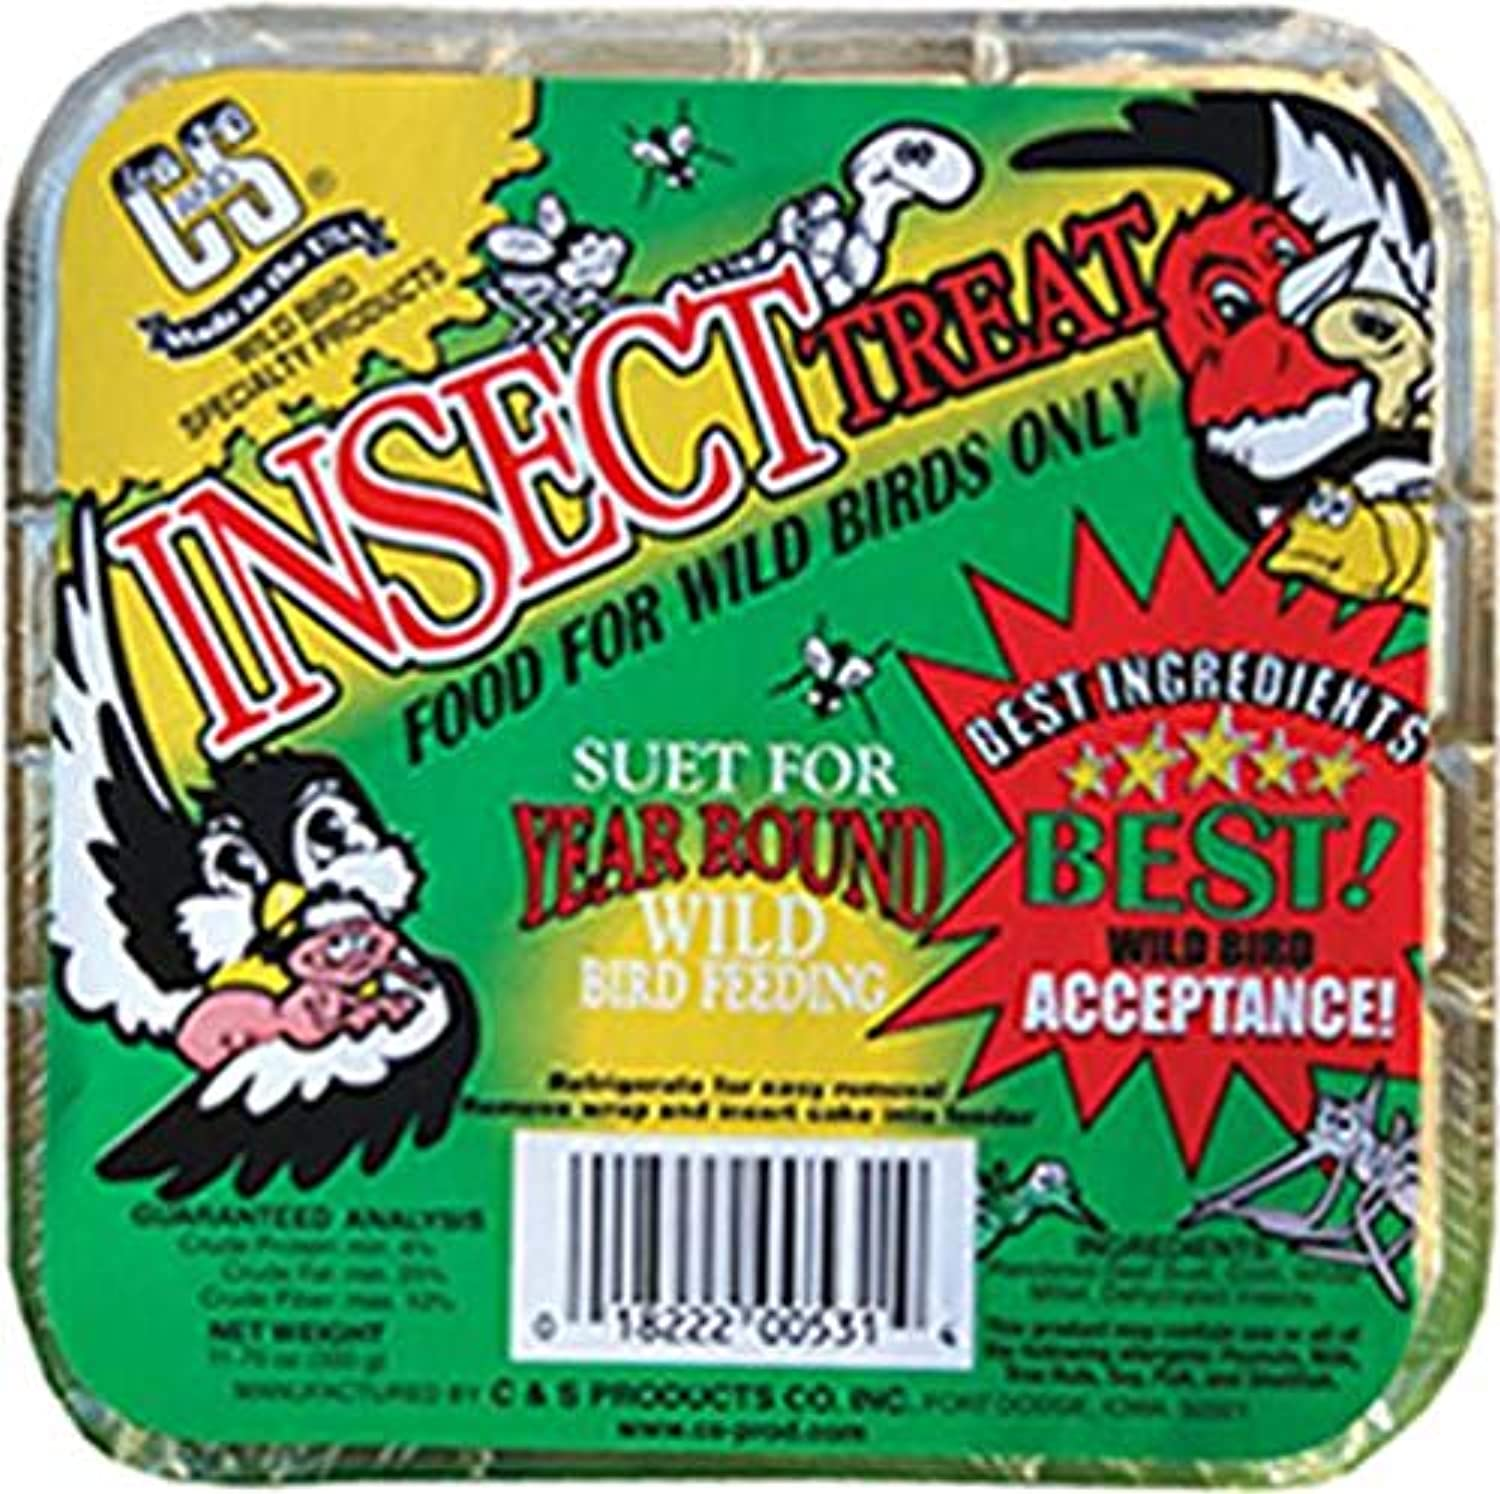 C&S Cands Products CS12531 113 4Ounce Insect Treat Suet